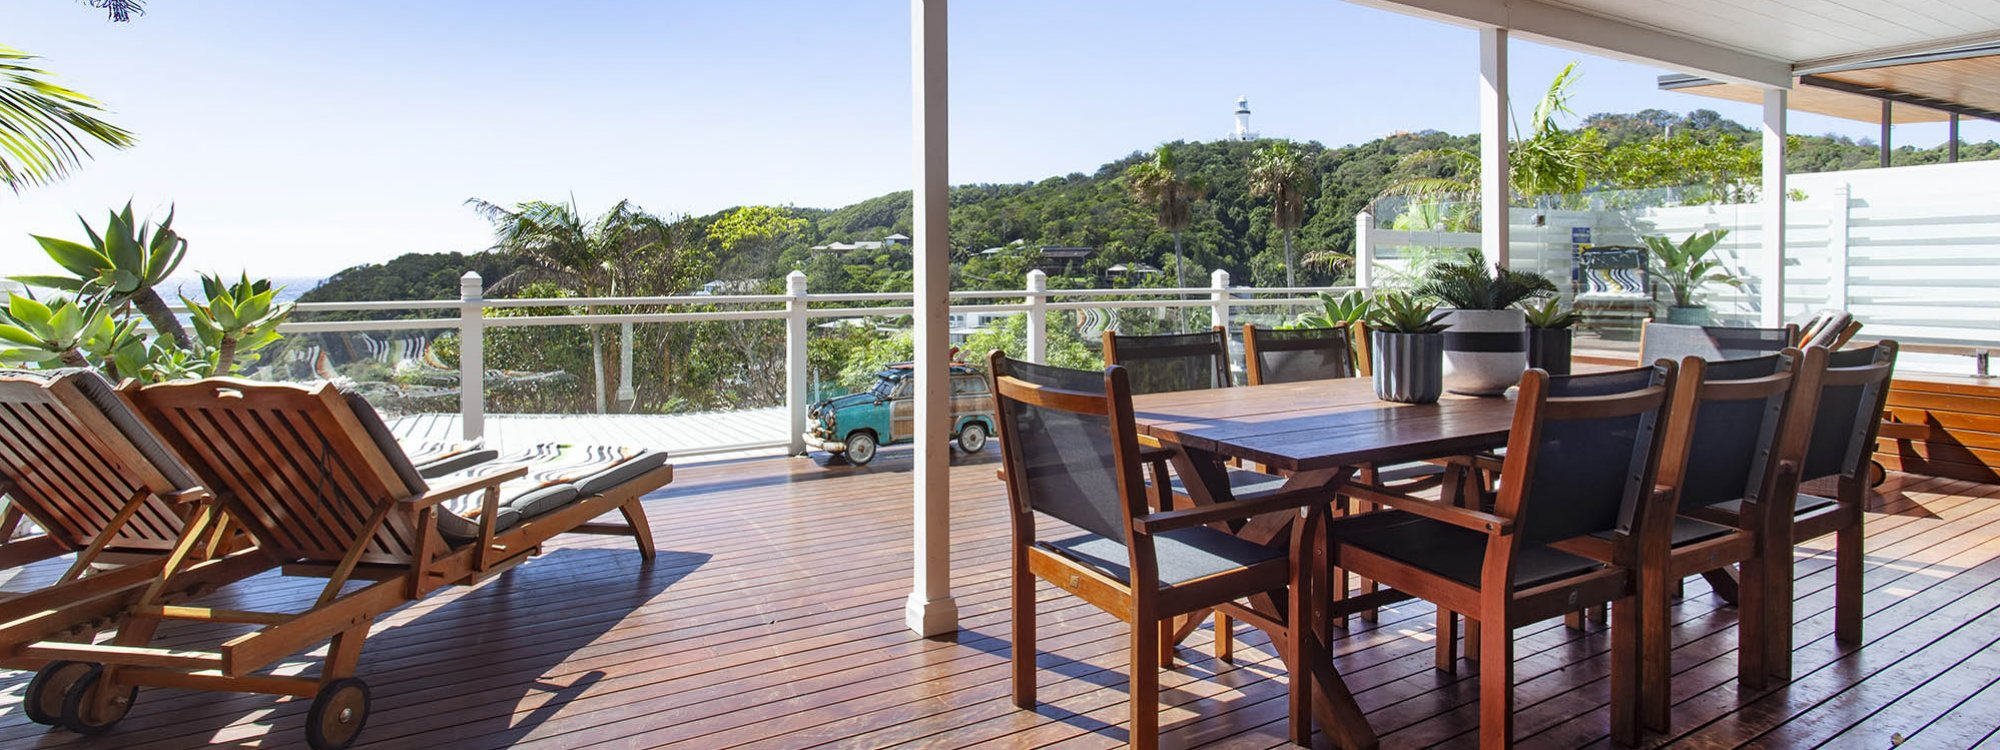 The Palms at Byron - Byron Bay - Main Floor Deck and View of Lighthouse